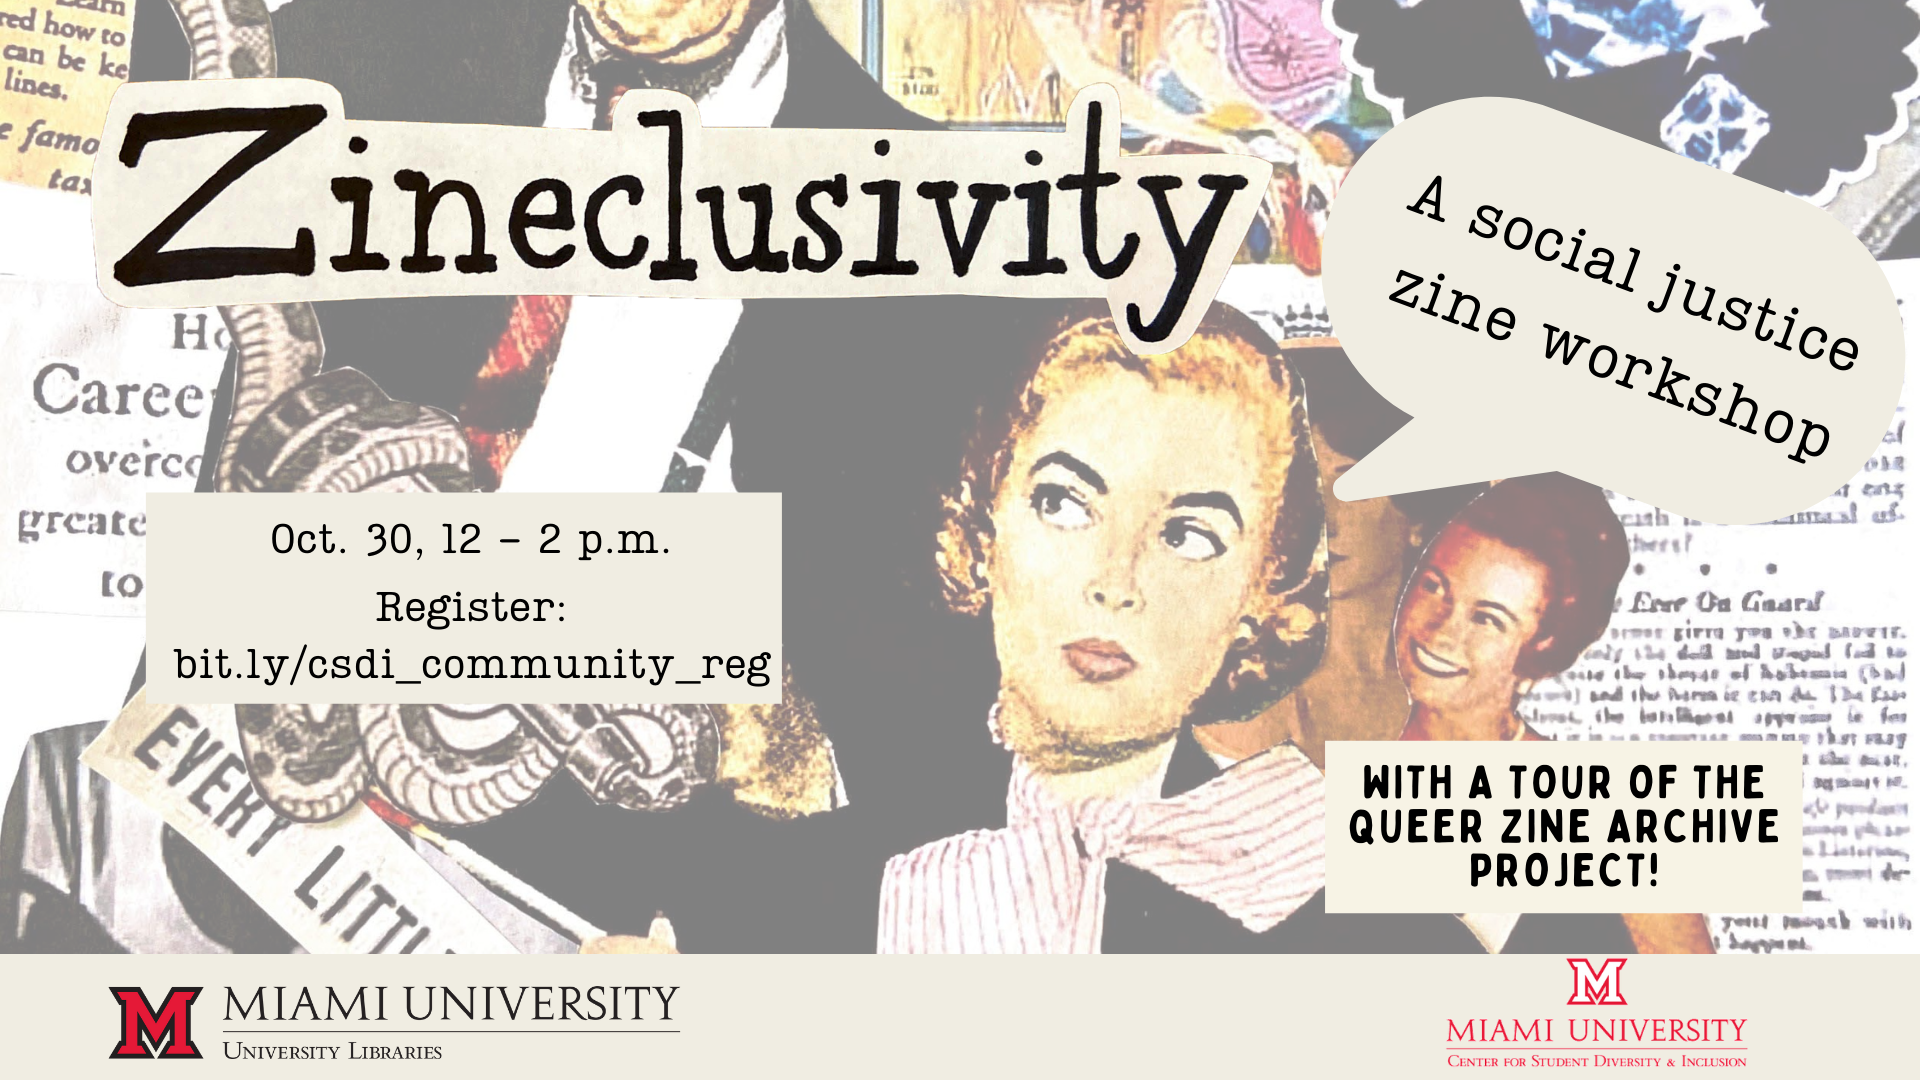 """An image of a 50s style woman with the title """"Zineclusivity"""" in funky text. A tan box with date information, """"Oct. 20 12-2 p.m. and a register link bit.ly/csdi_community_reg and more text reading """"with a tour of the queer zine archive project!"""""""